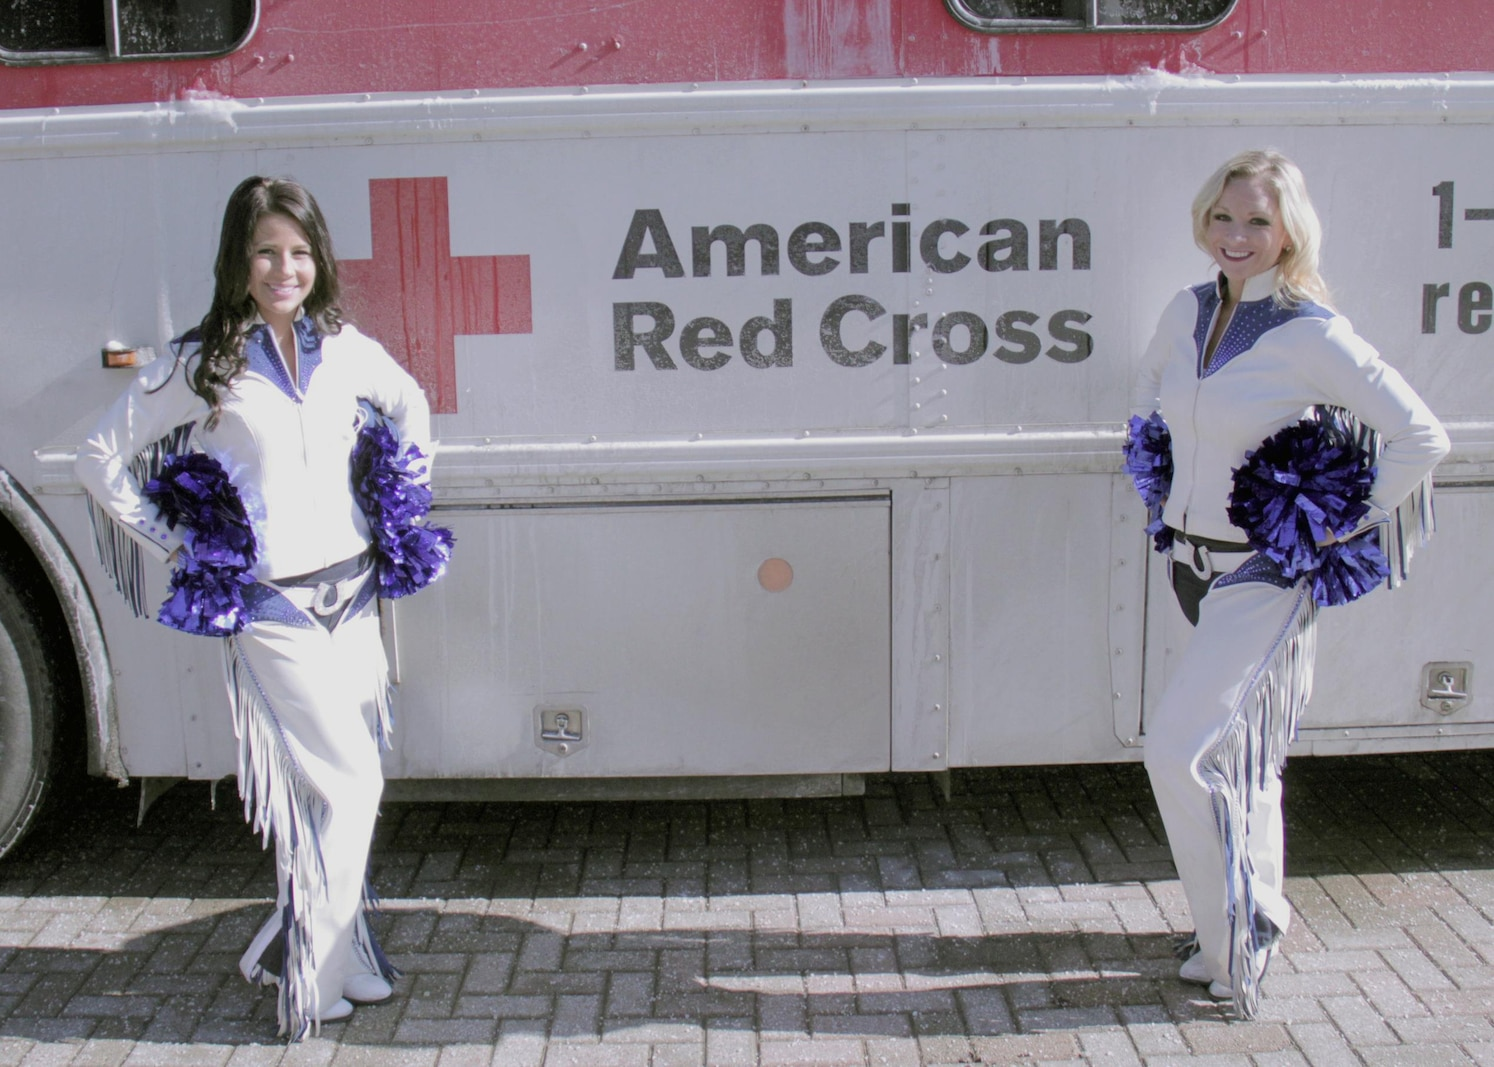 Colts Cheerleaders paid a special visit to the RS Indianapolis Blood Drive Lawrence, IN Jan. 26. The American Red Cross and RS Indianapolis blood drive, gathered enough blood to save up to 63 lives.